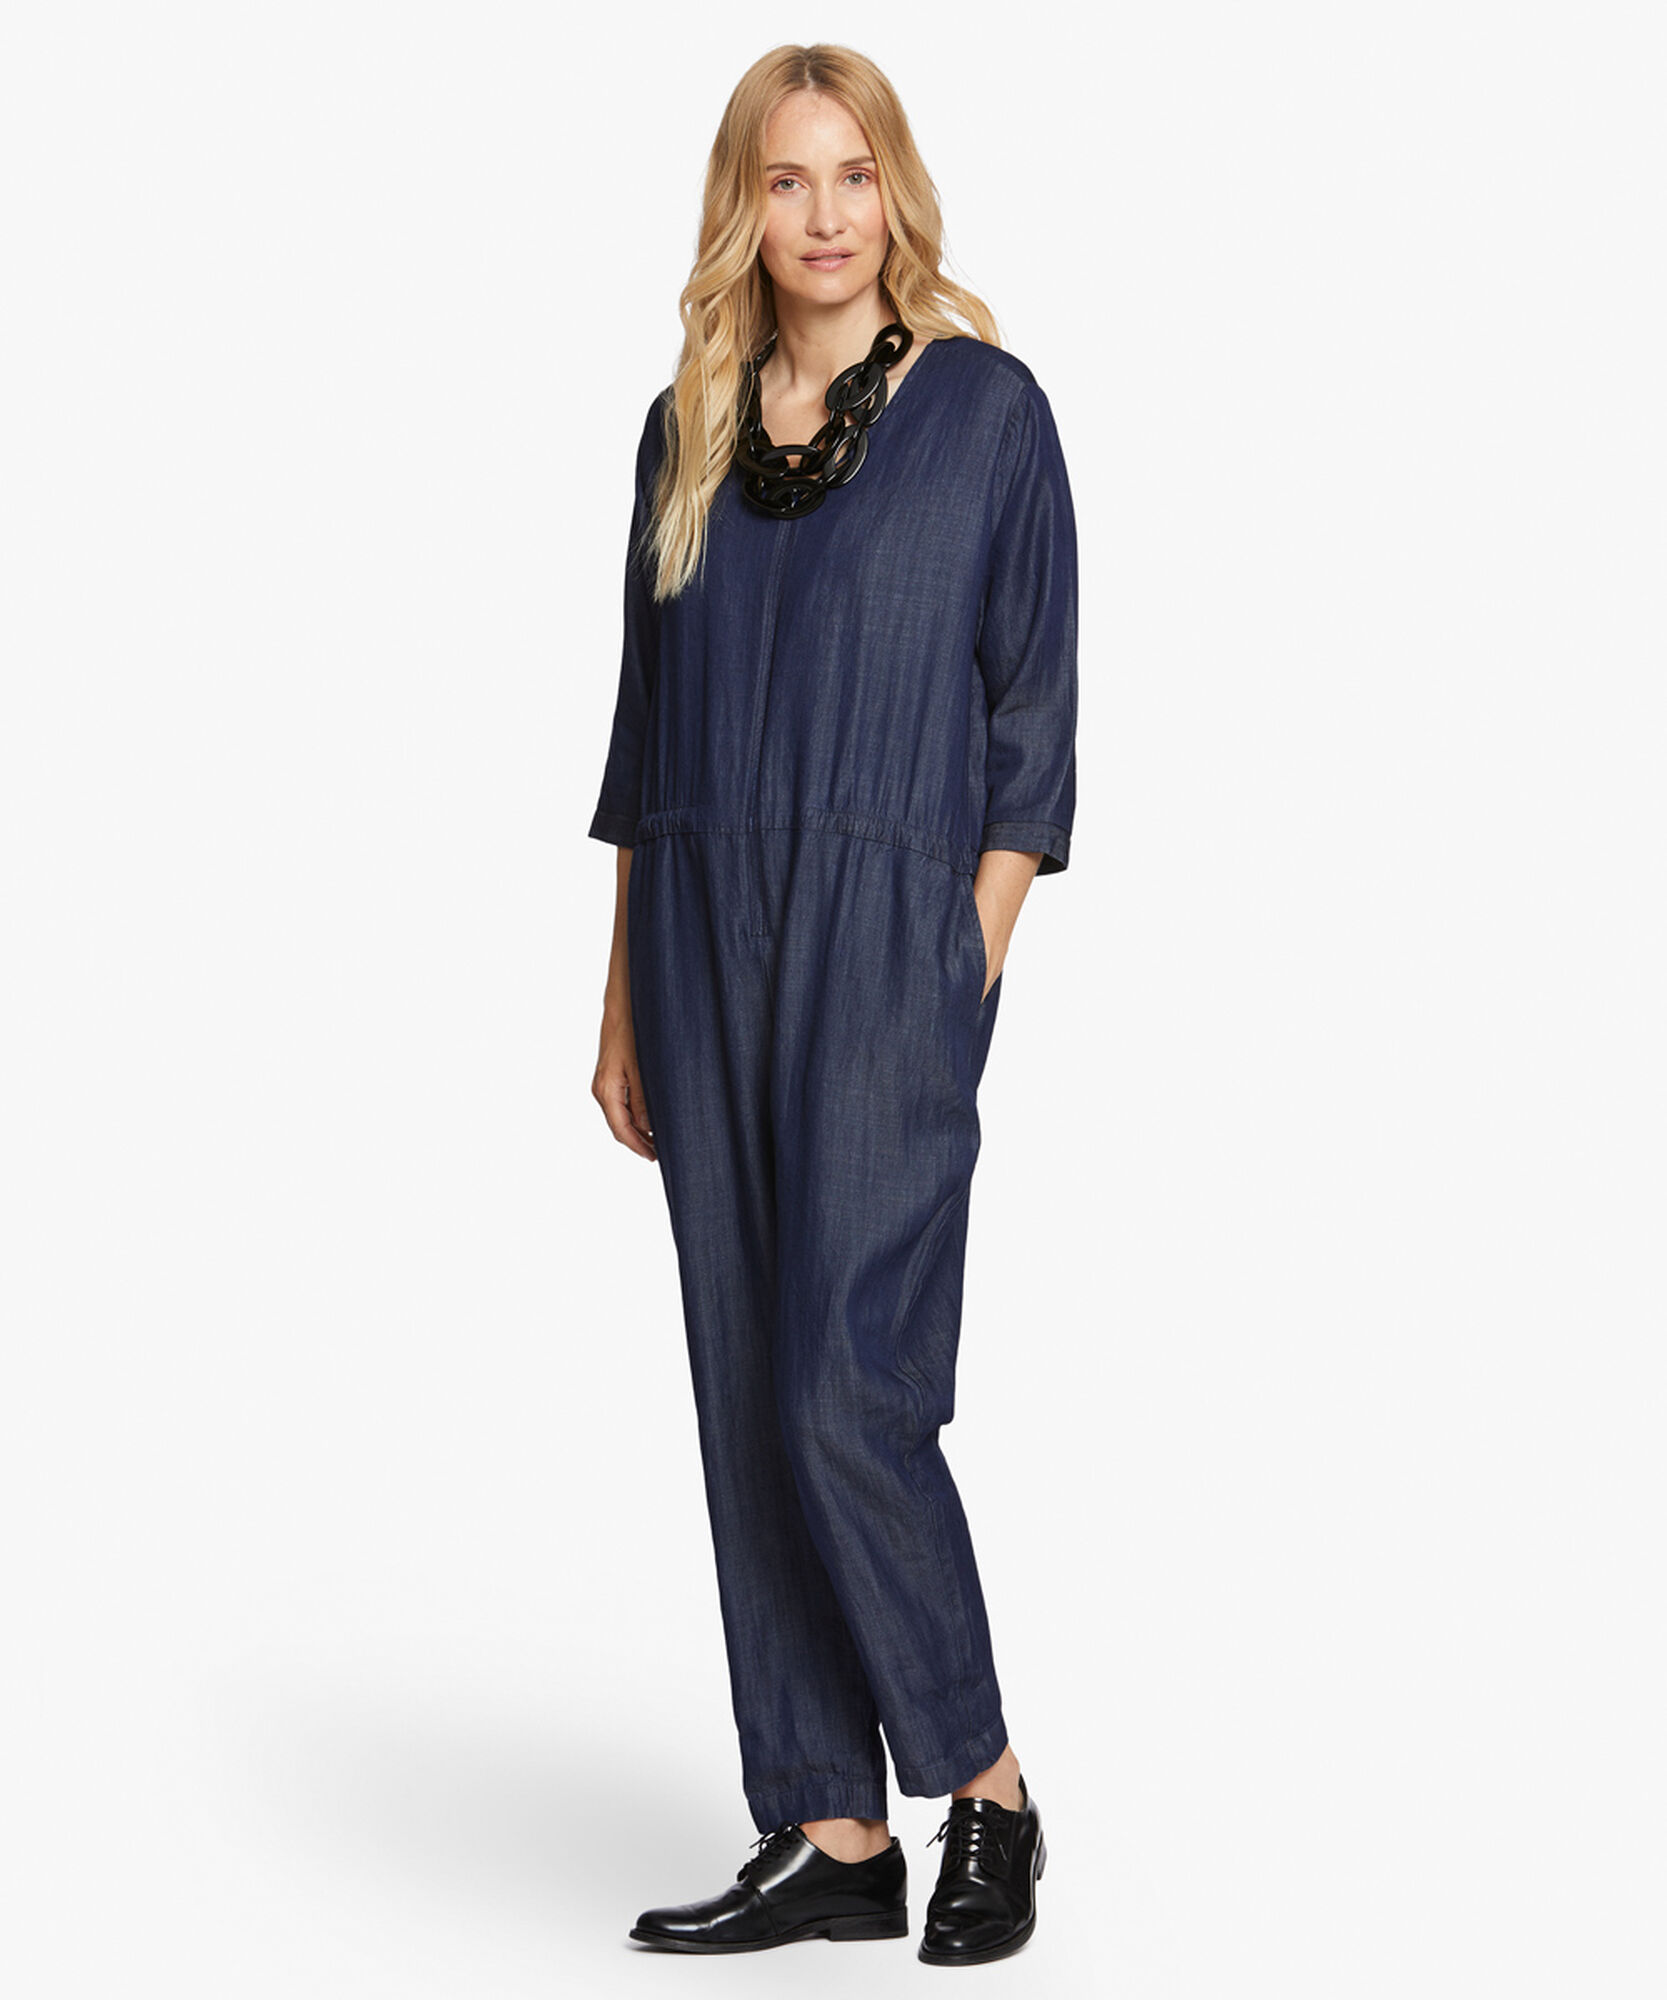 NOVA JUMPSUIT, Dark Denim, hi-res